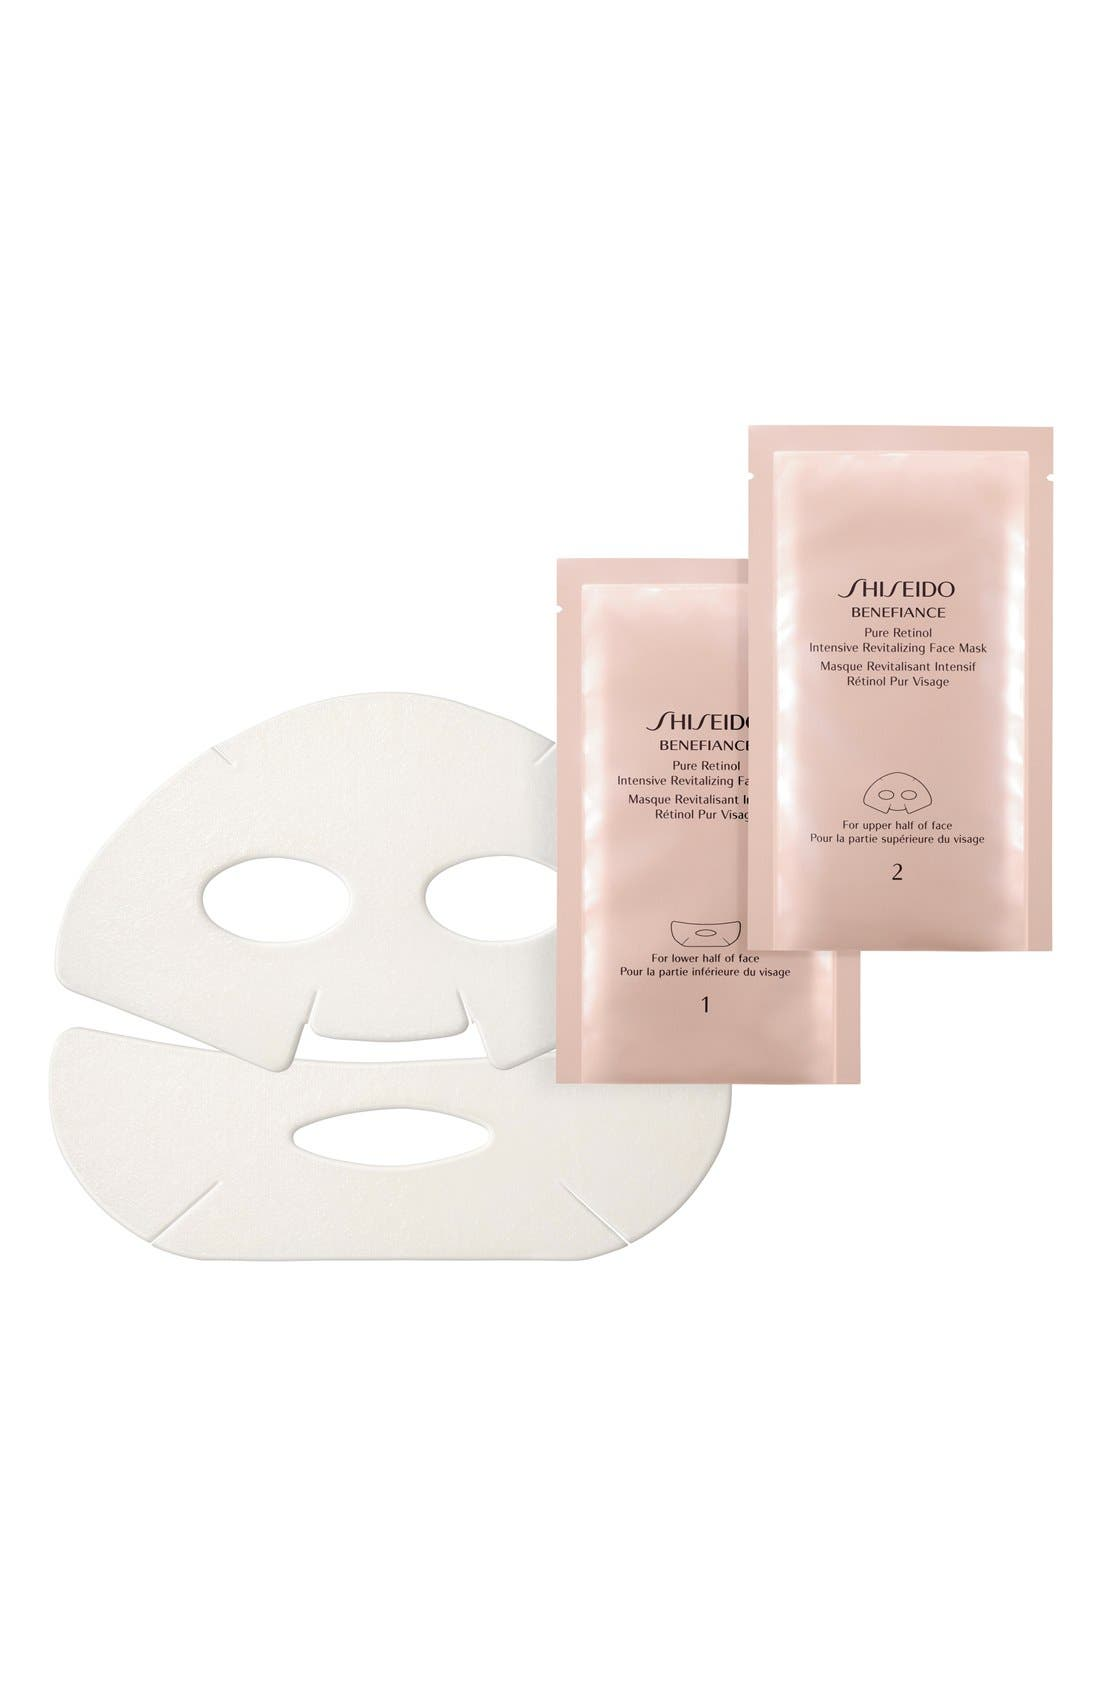 'Benefiance' Pure Retinol Intensive Revitalizing Face Mask,                             Main thumbnail 1, color,                             NO COLOR